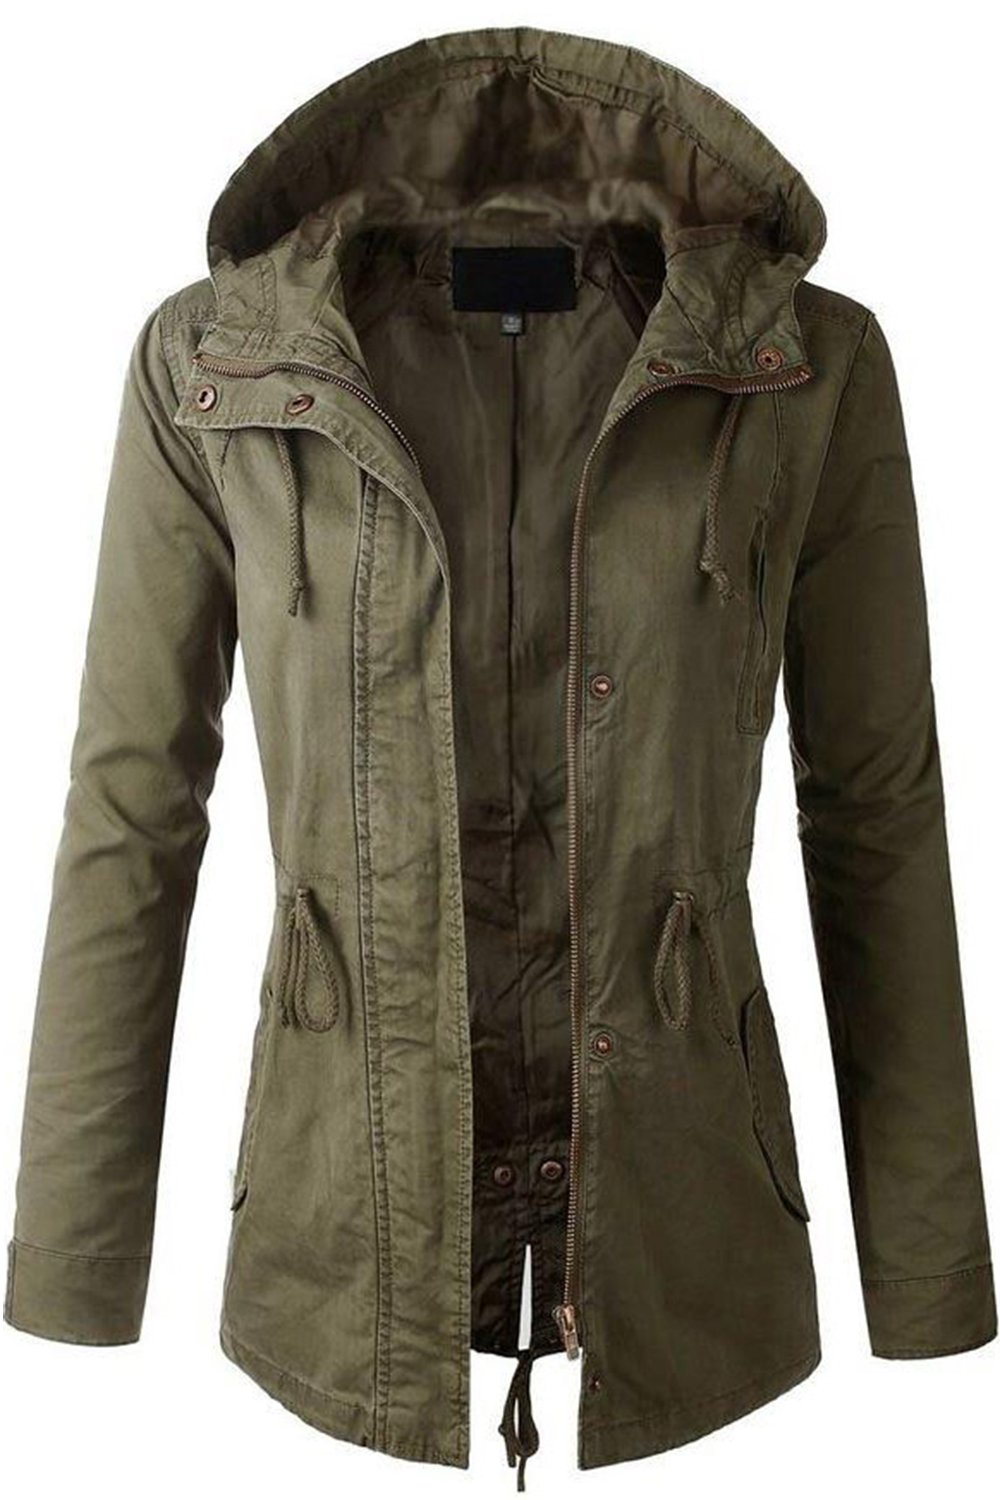 FASHION BOOMY Womens Zip Up Military Anorak Jacket W/Hood (Large, Olive)